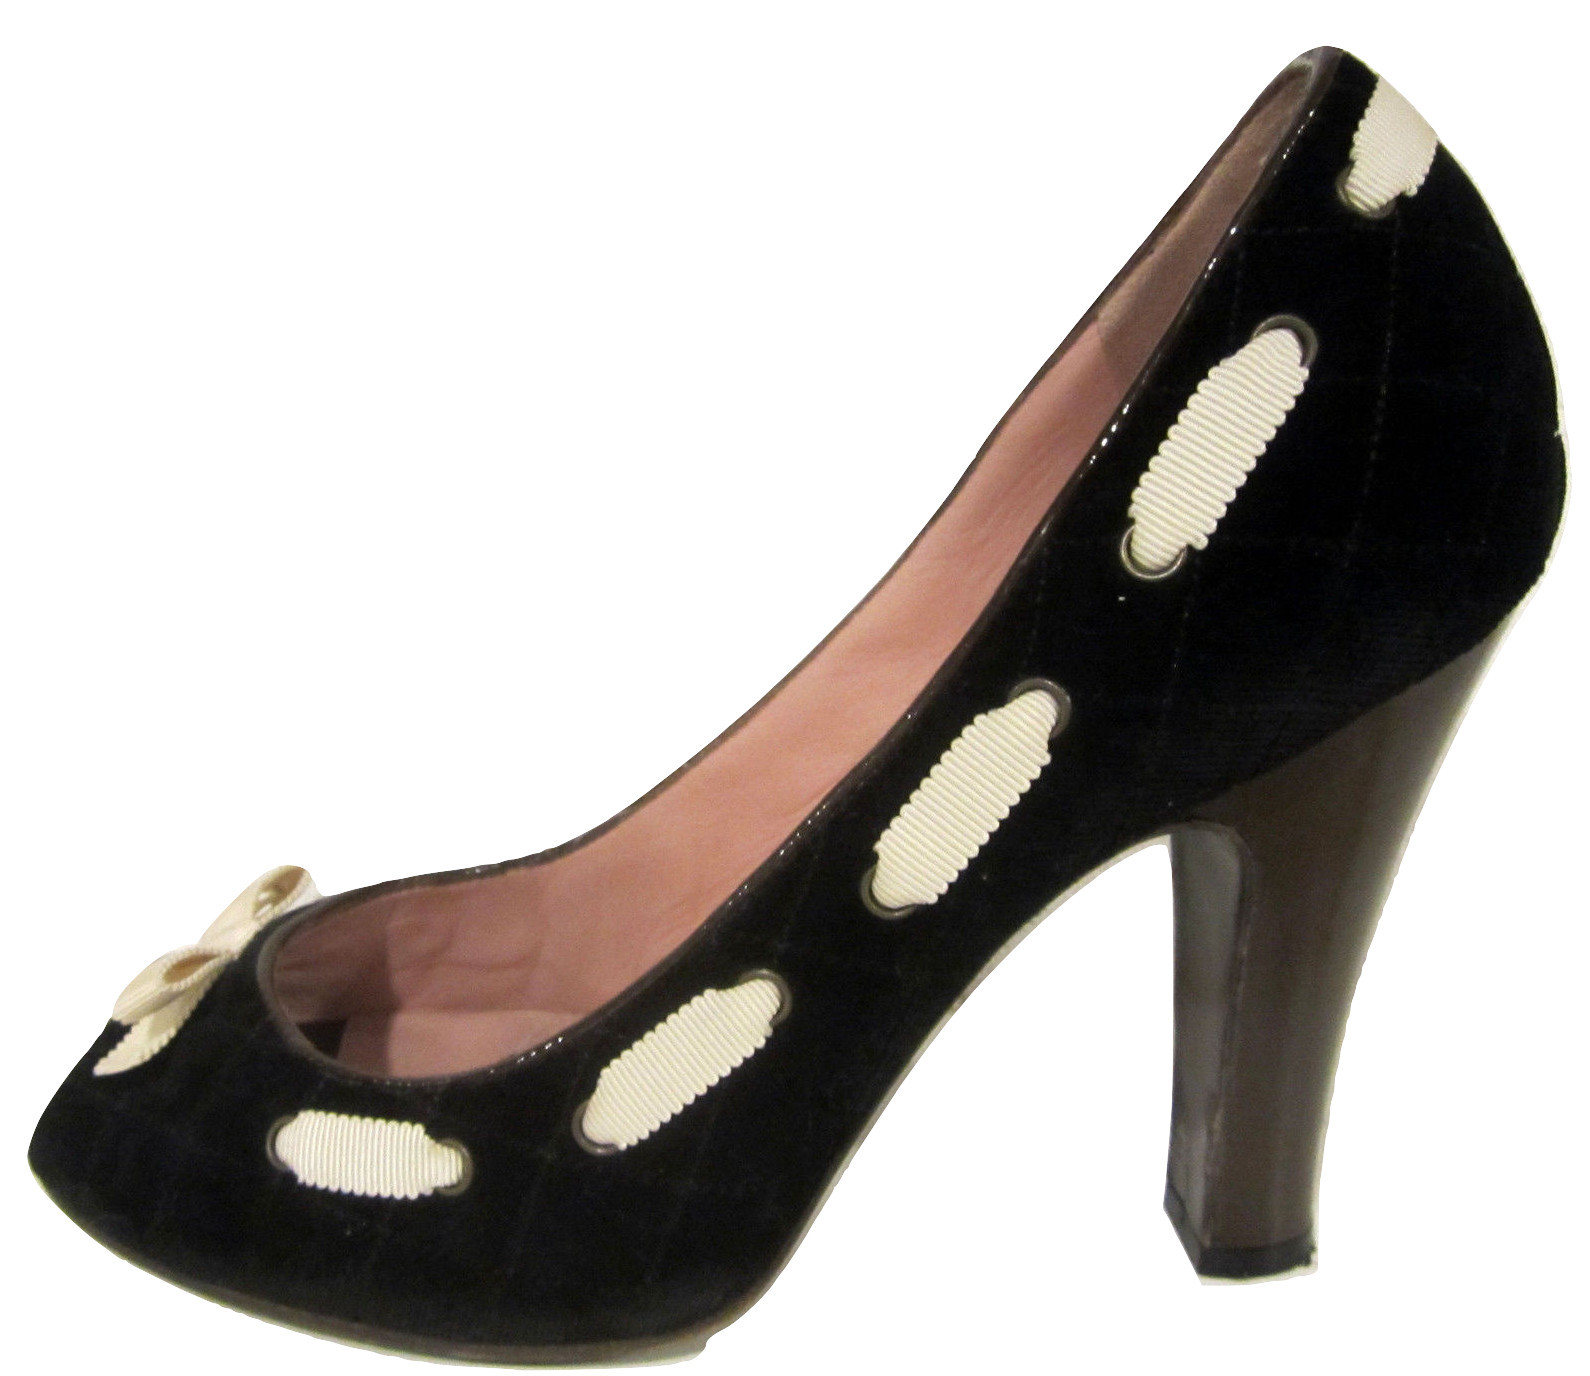 Primary image for Marc by Marc Jacobs Peeptoe Heels 40.5 / 10.5 black quilted velvet & ivory bows